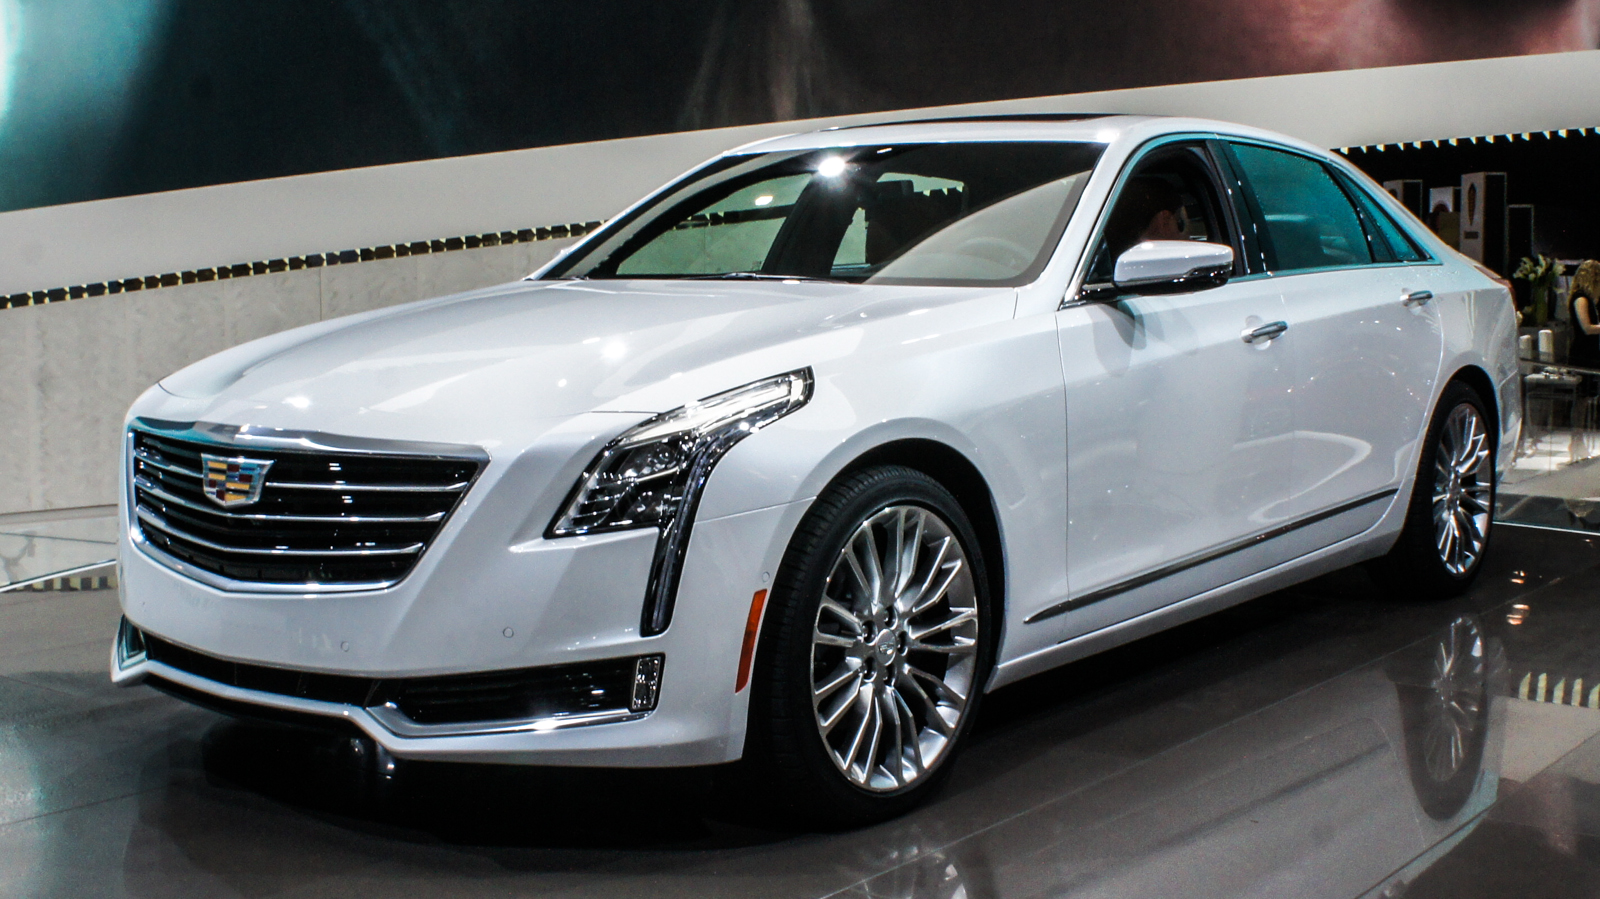 cadillac ct6 powerful elegance pictures cnet. Black Bedroom Furniture Sets. Home Design Ideas